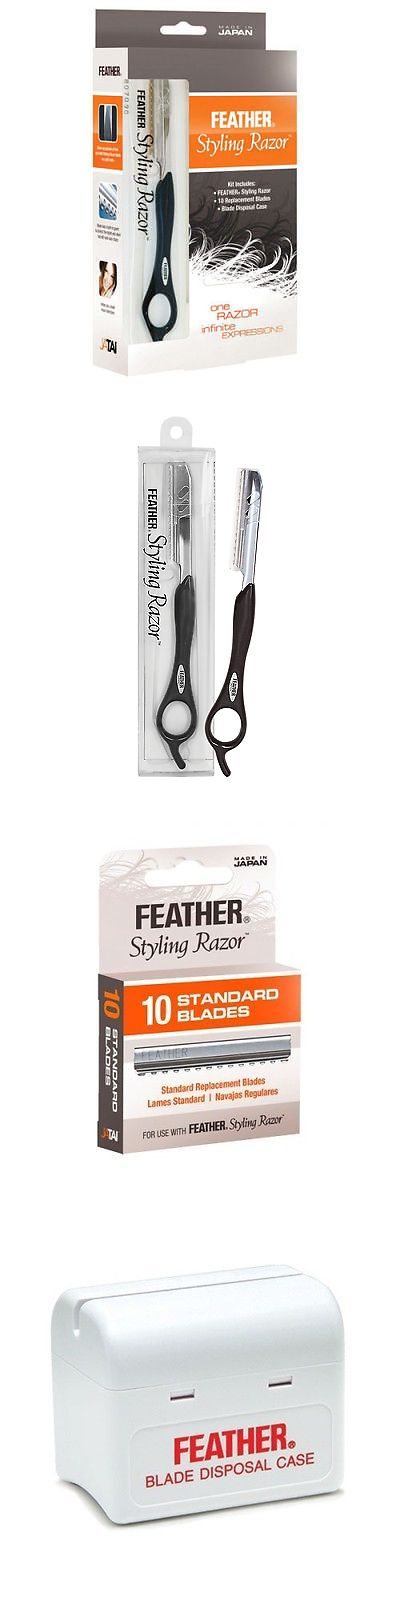 Straight Razors: Jatai Feather Styling Razor Intro Kit Blades Black Haircut Hair Styling Case -> BUY IT NOW ONLY: $34.99 on eBay!